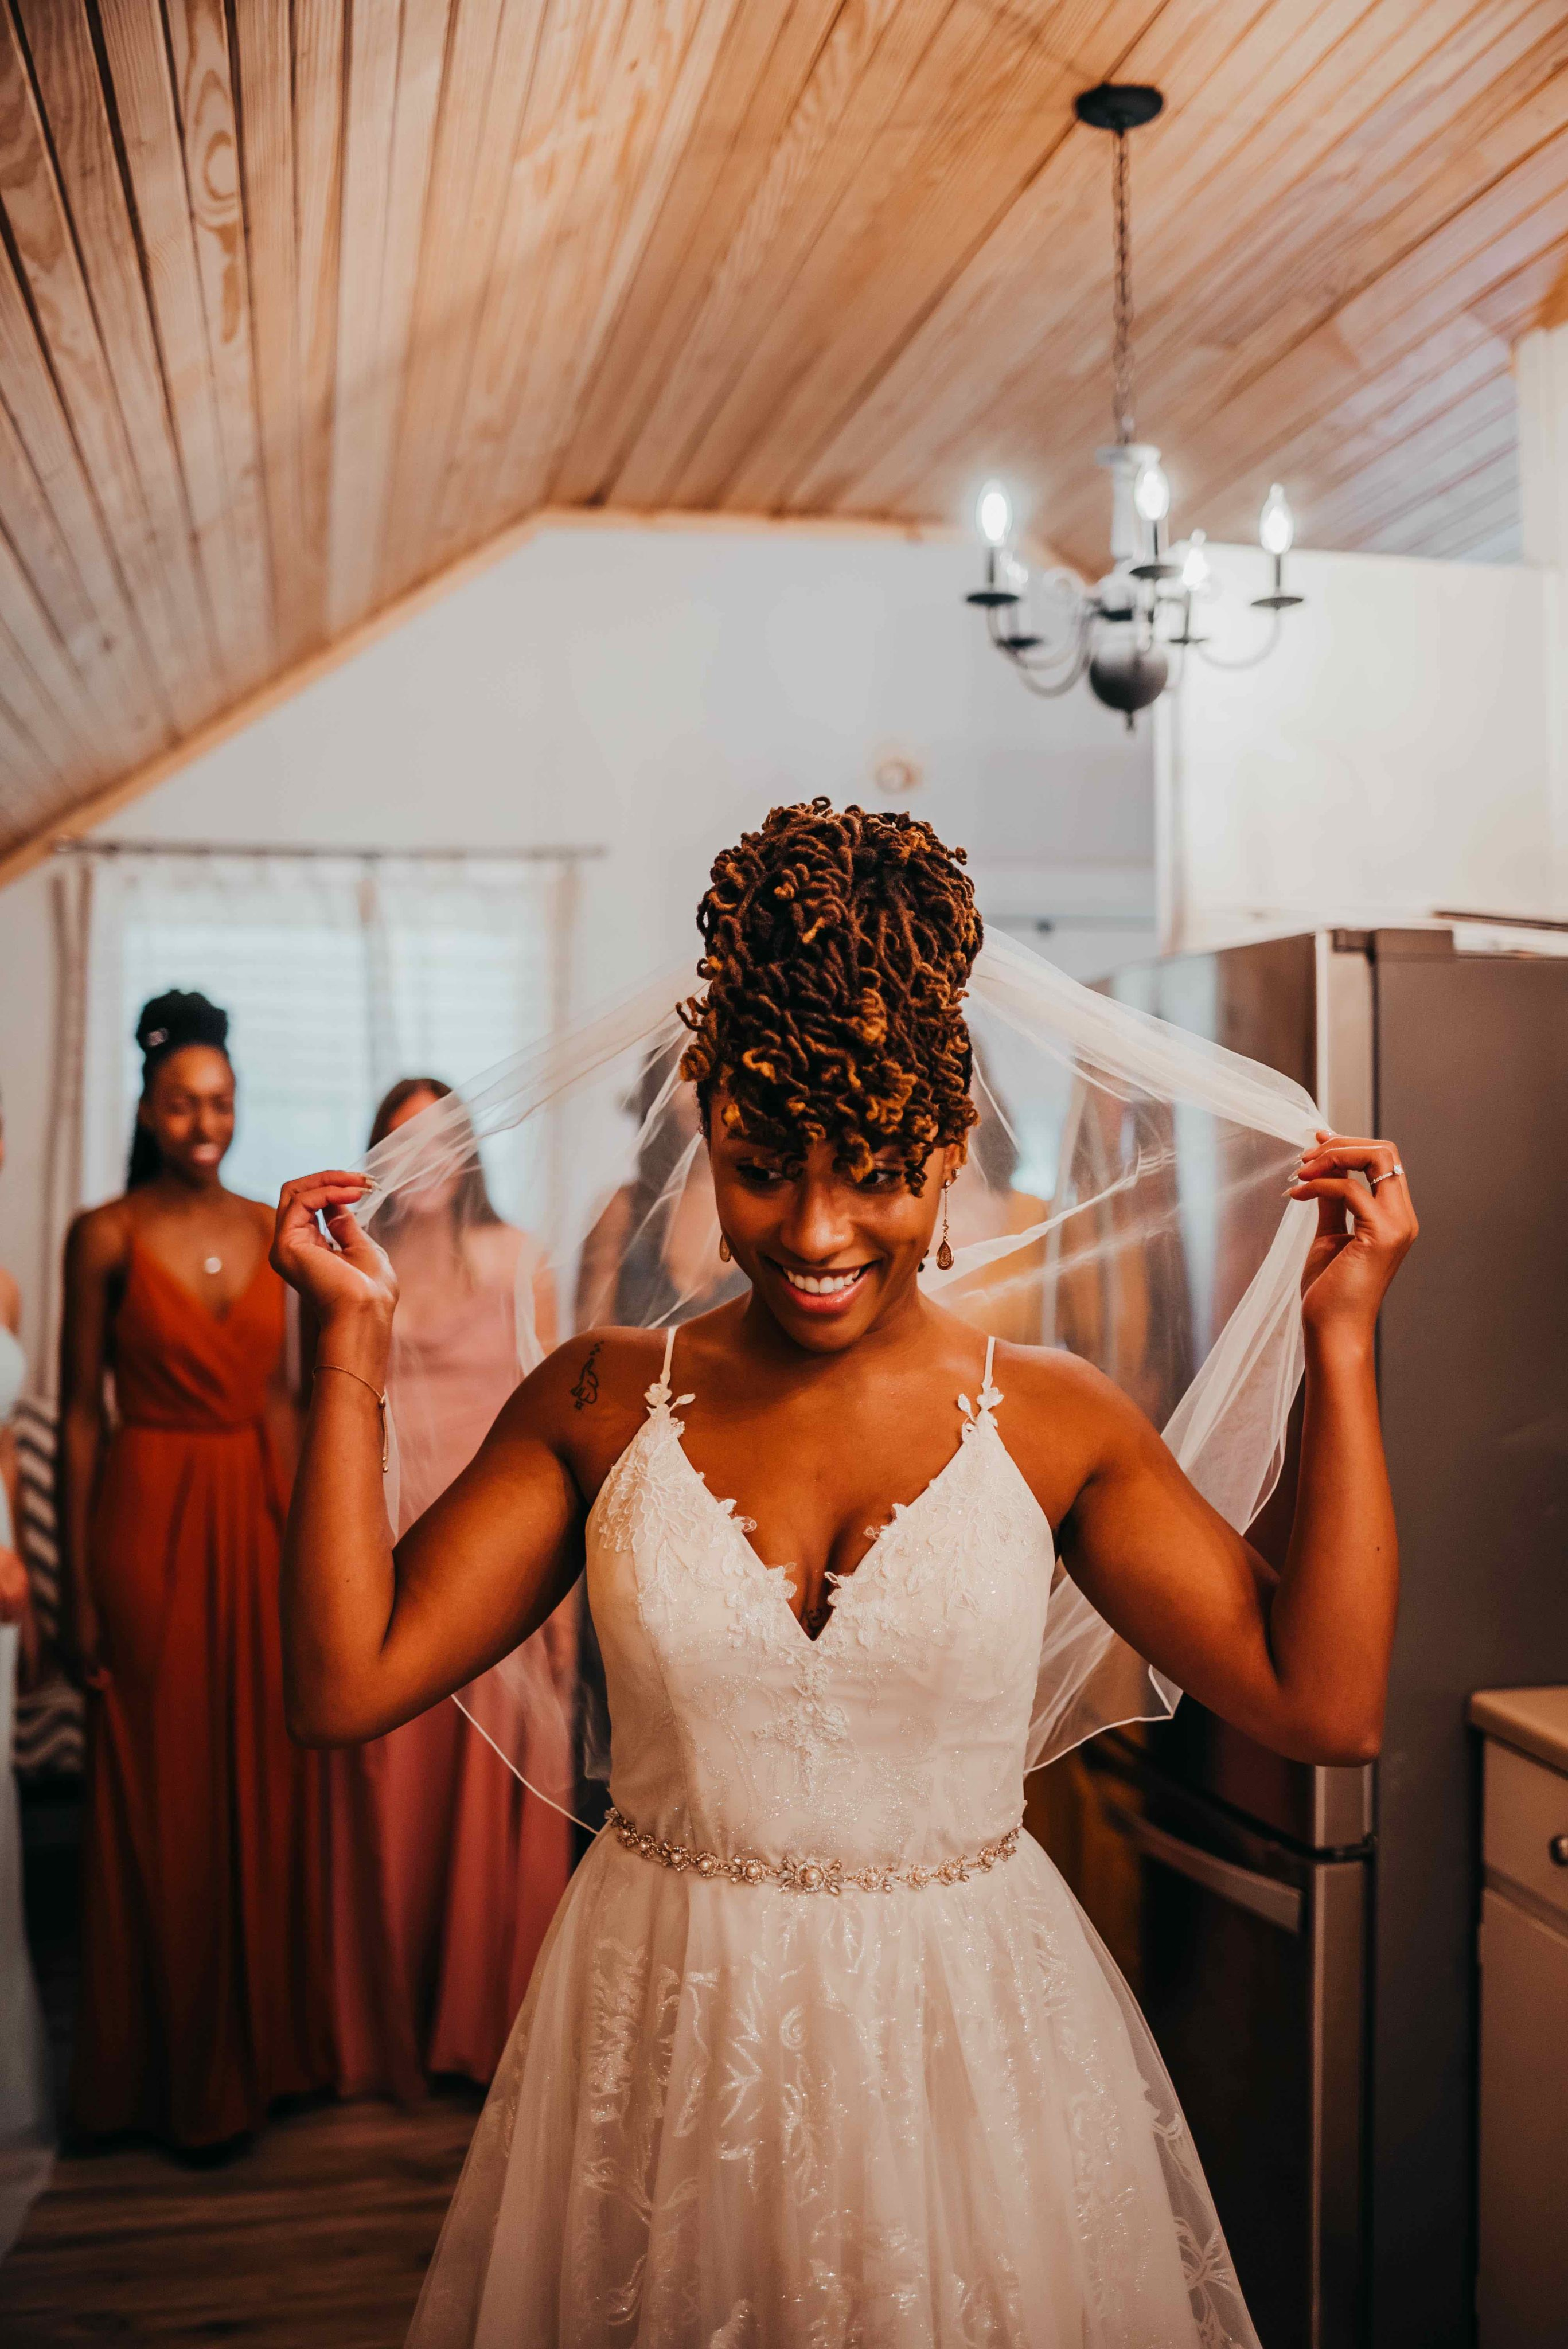 Bride and bridesmaid first look